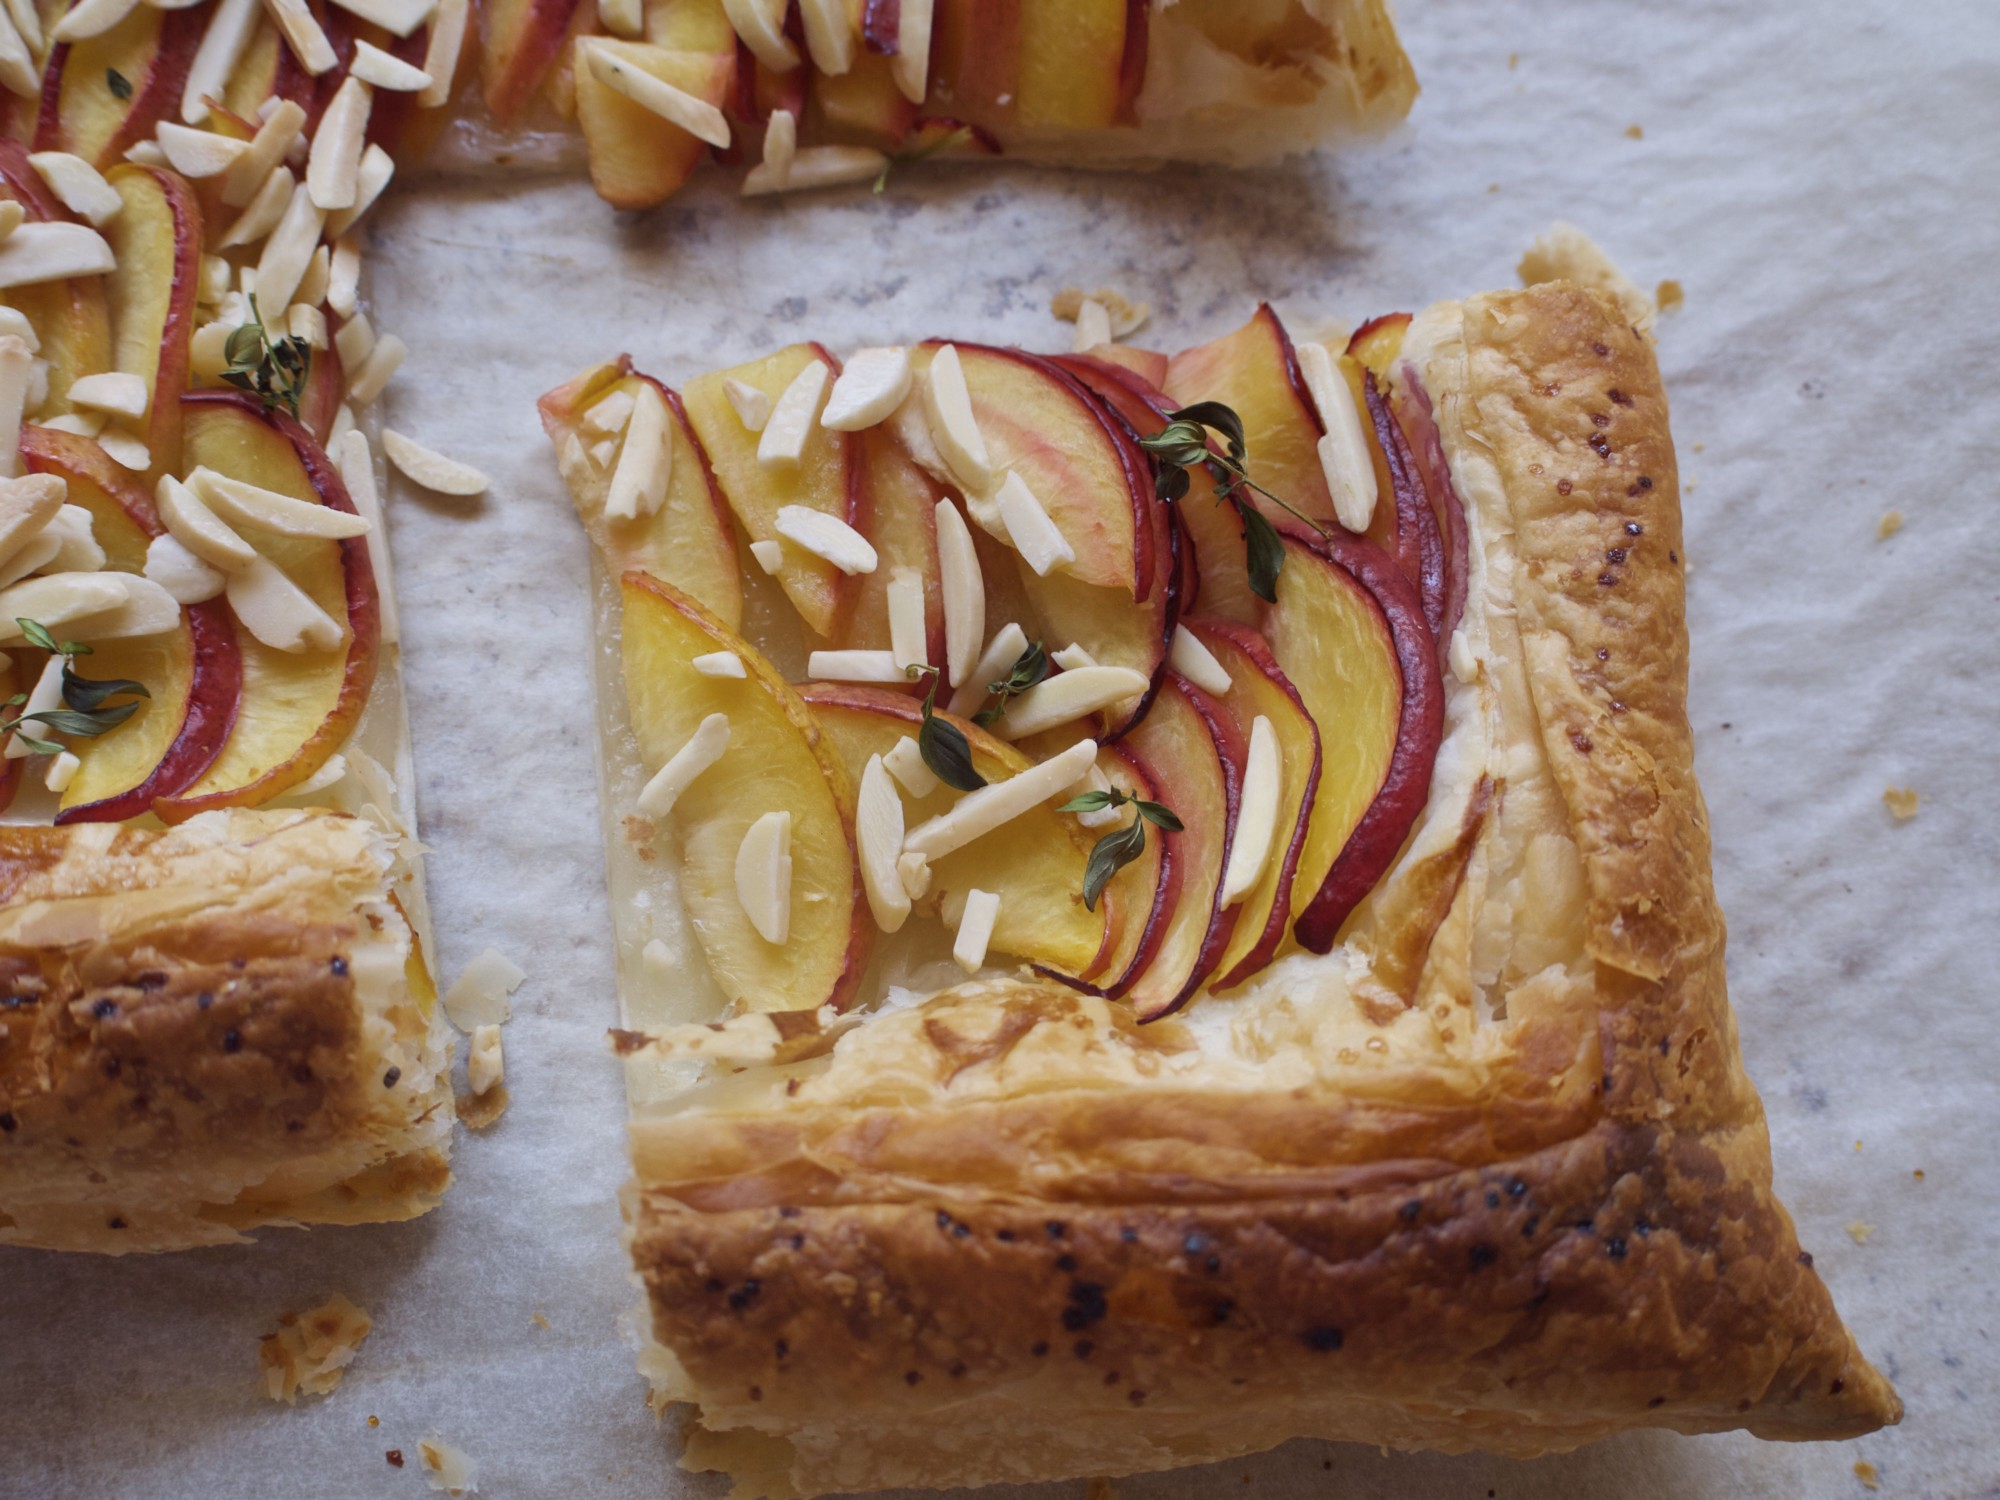 A tart topped with thinly-sliced peaches, sprinkled with slivered almonds.